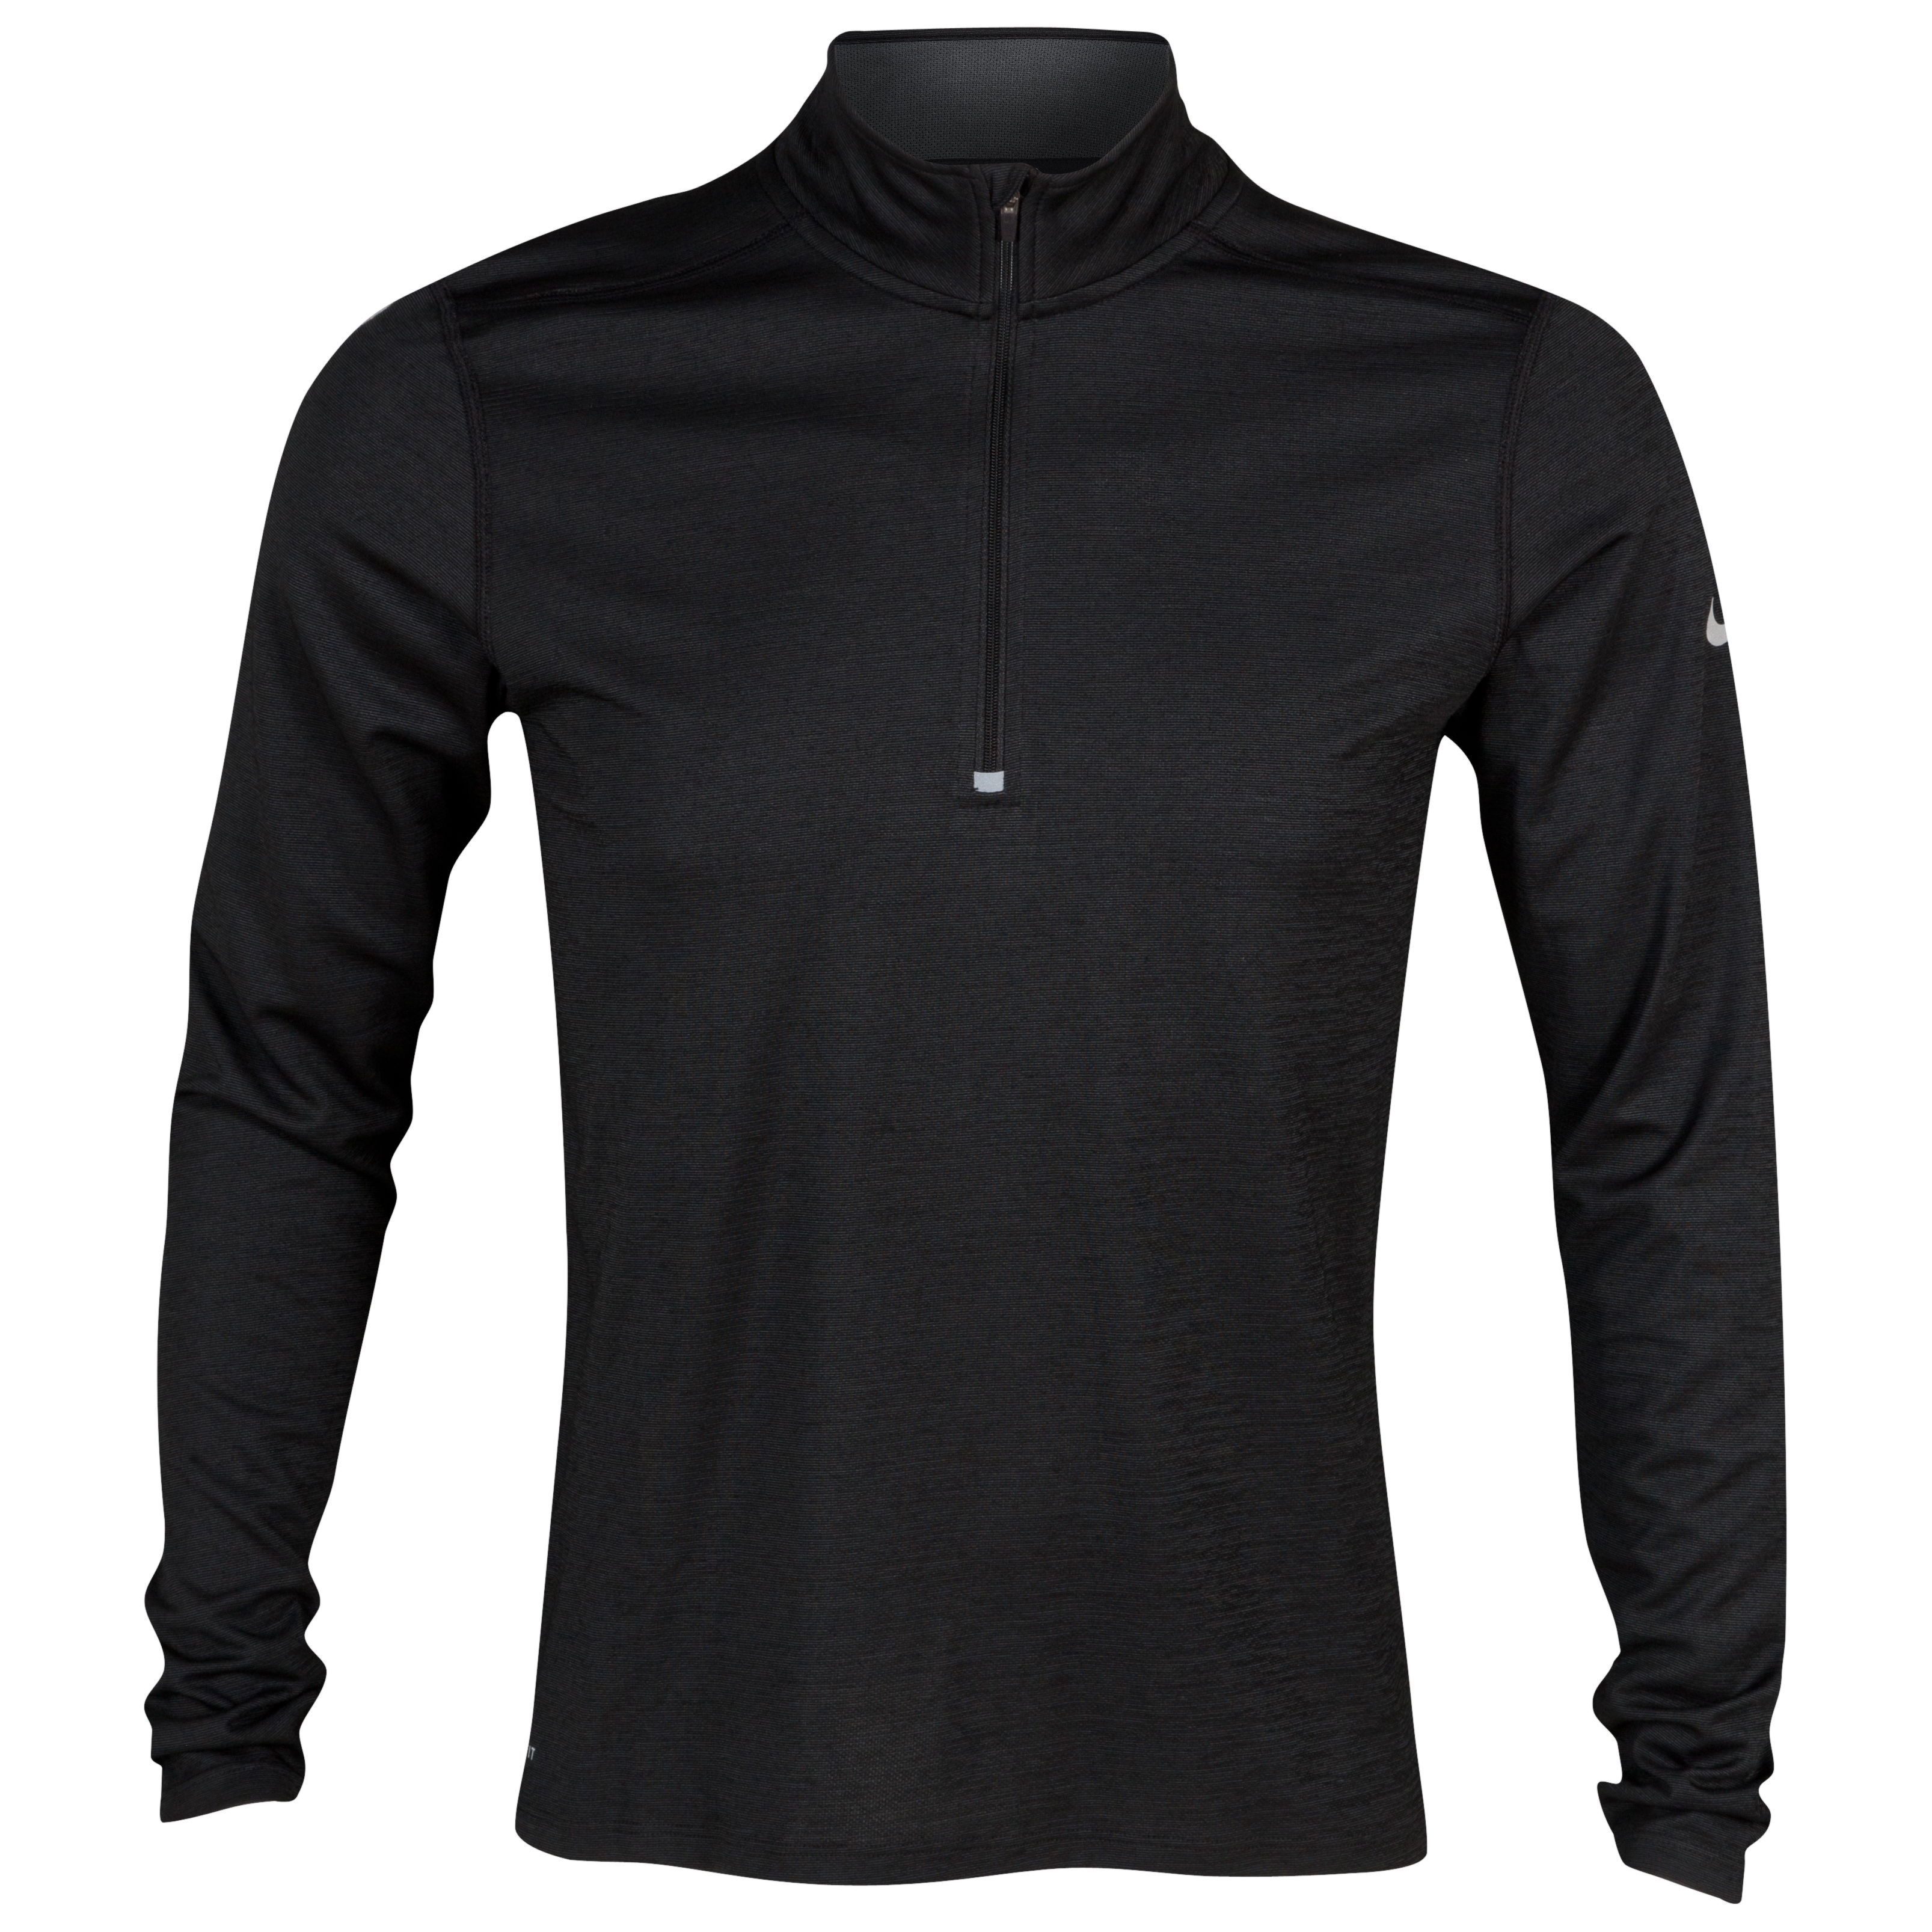 Nike Wool 1/2 Zip Top - Black/Anthracite/Reflective Silver